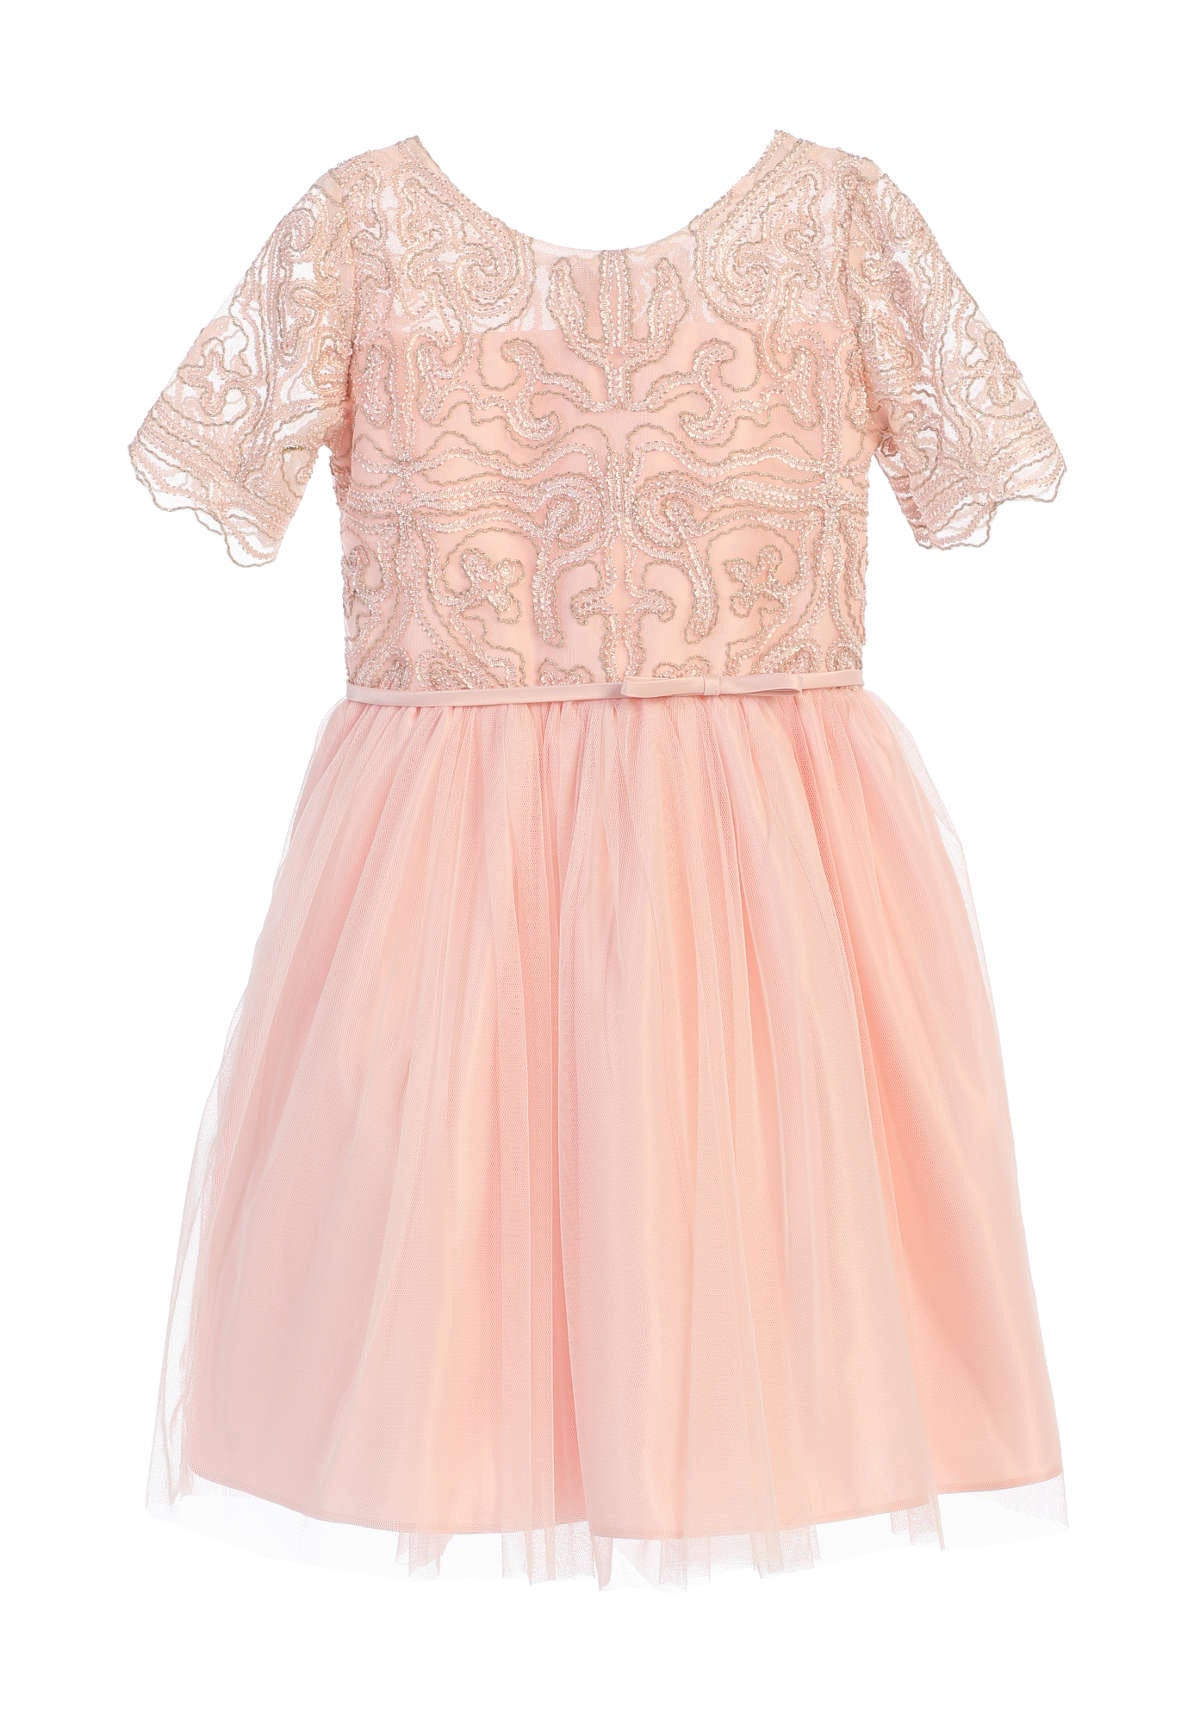 Sweet Kids Cord Embroidered Mesh Cocktail Dress - Petal Pink, SK693